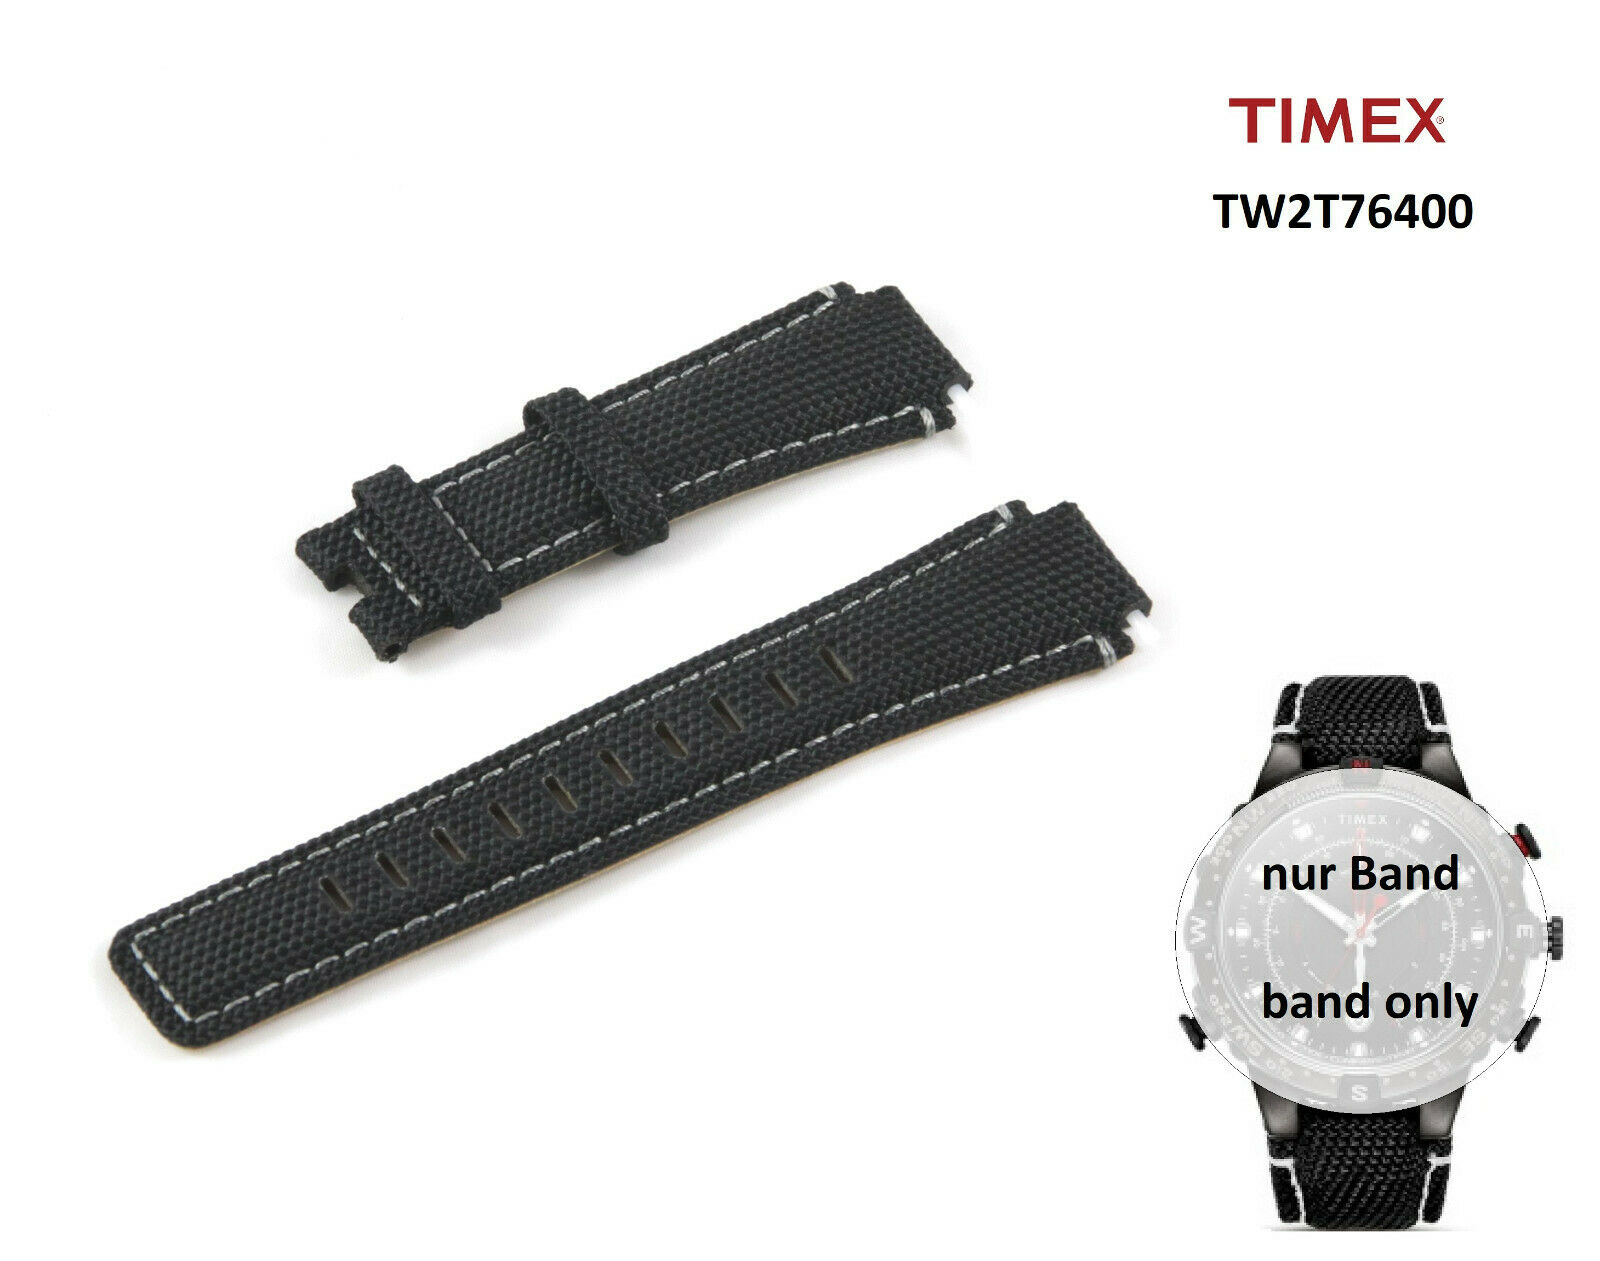 UPC 753048880034 product image for Timex Replacement Band Tw2t76400 Allied - Tide Temp Compass For T2n723 T2n738 | upcitemdb.com